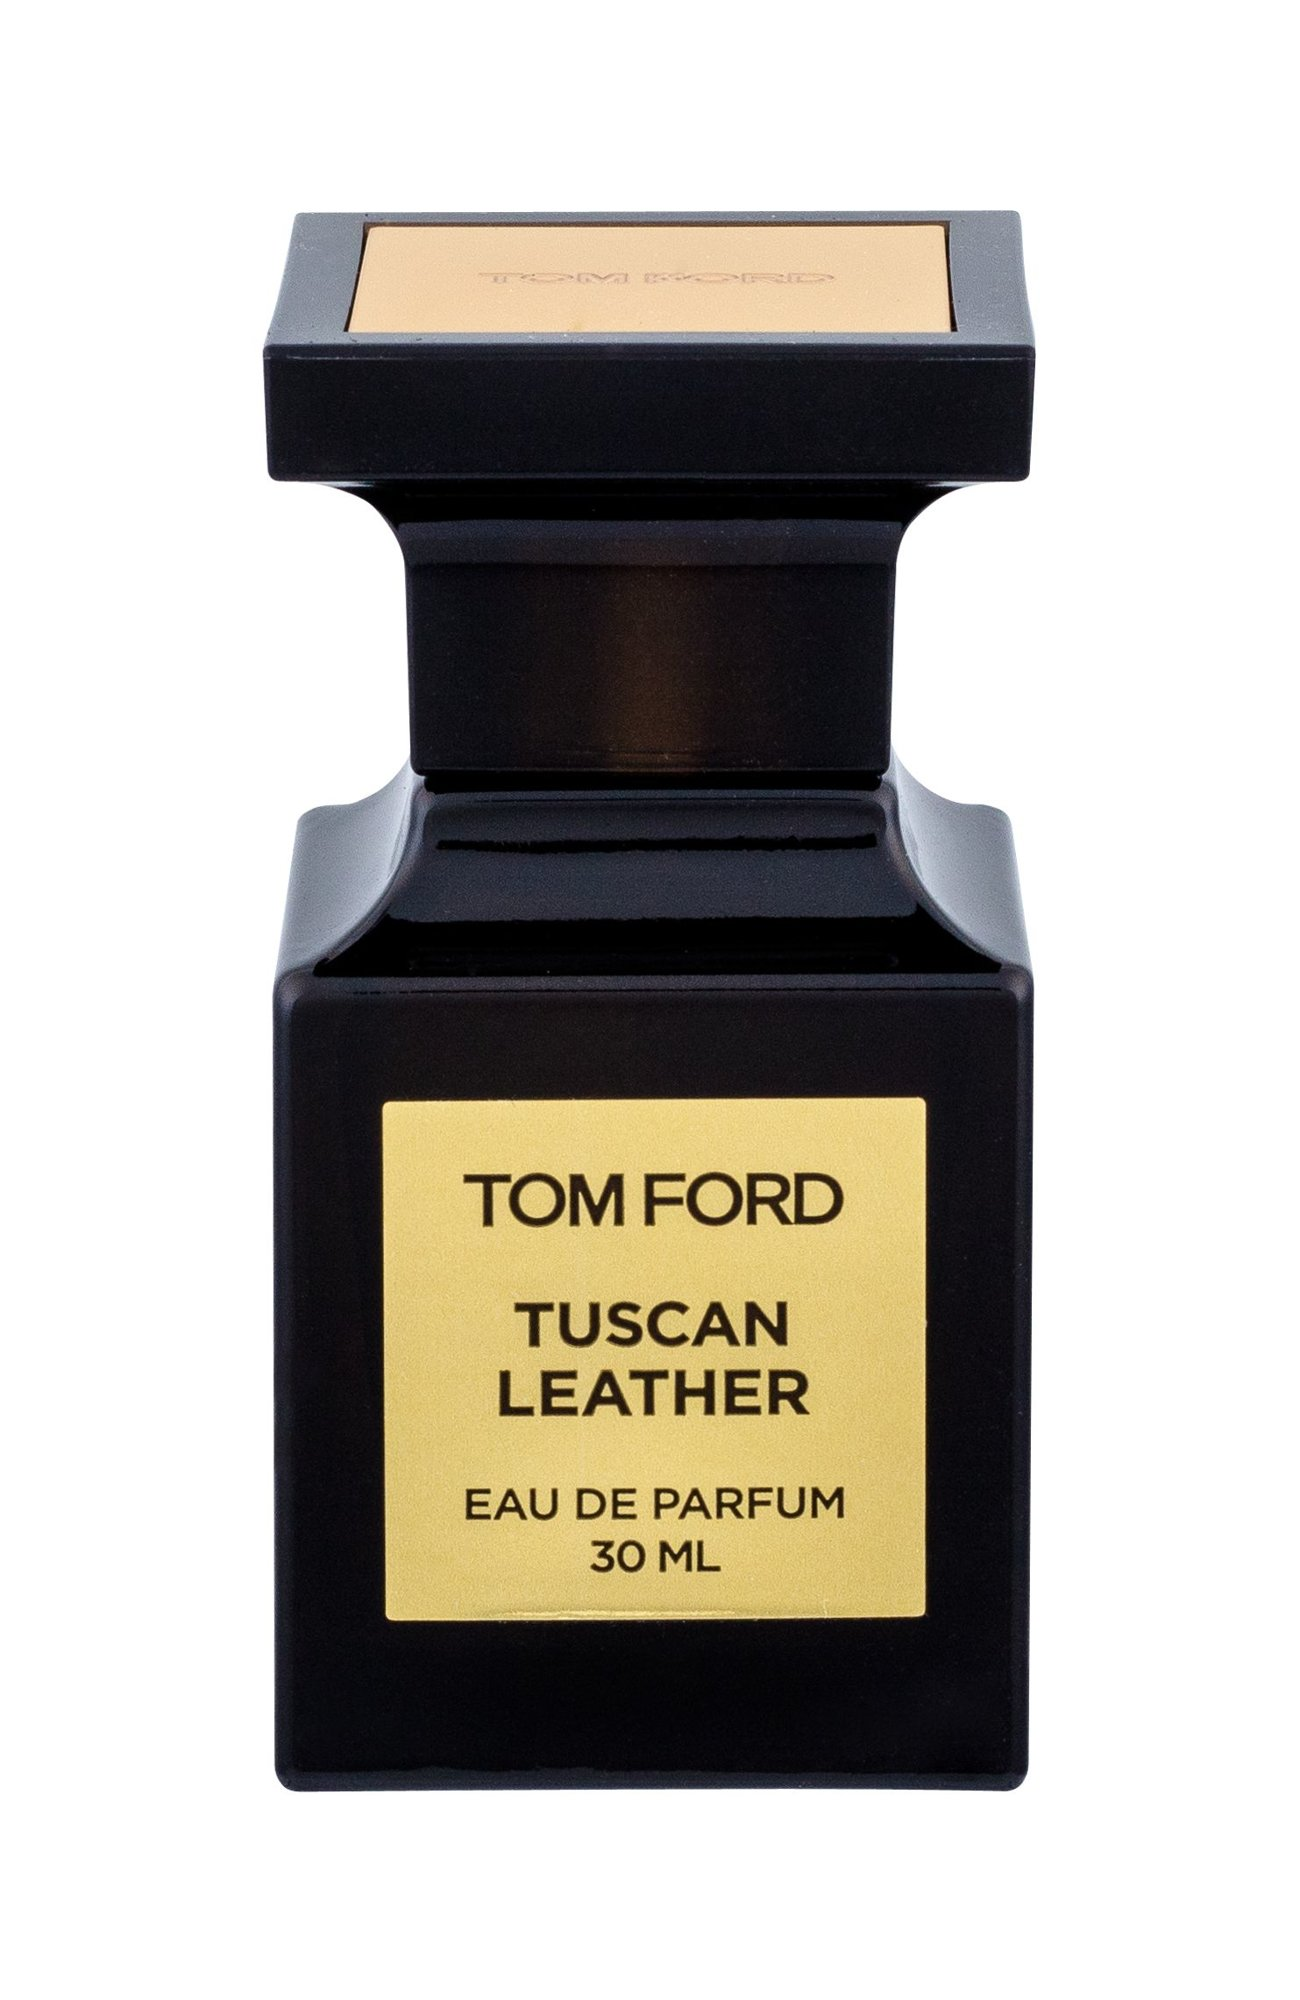 TOM FORD Tuscan Leather Eau de Parfum 30ml